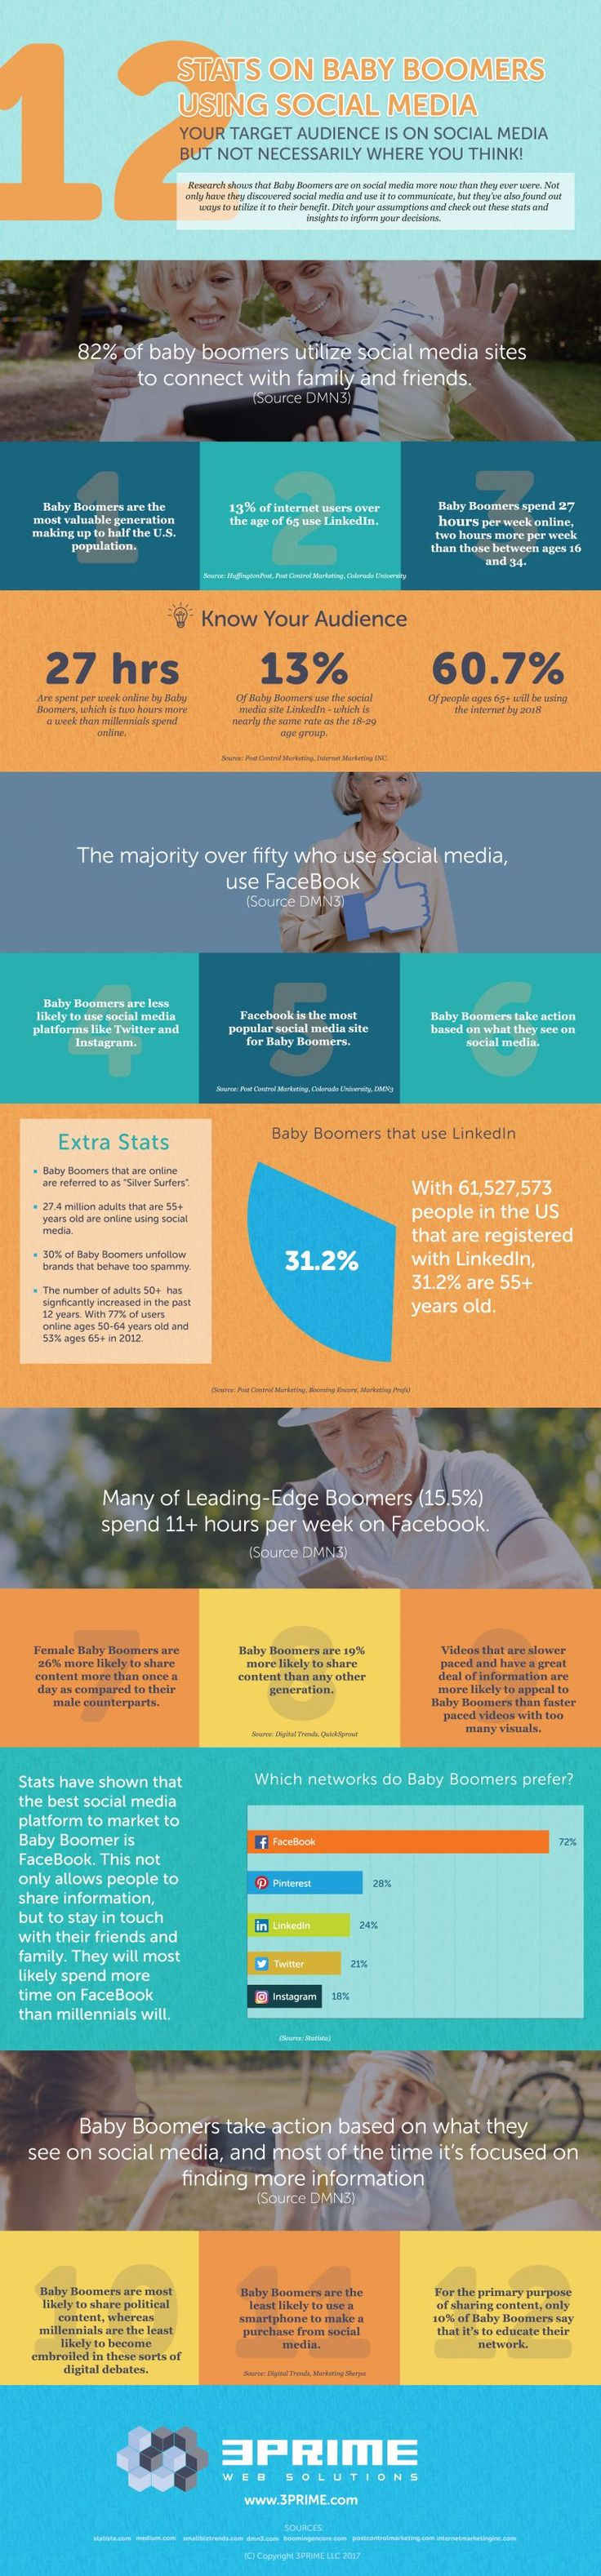 How Baby Boomers Use Social Media [Infographic